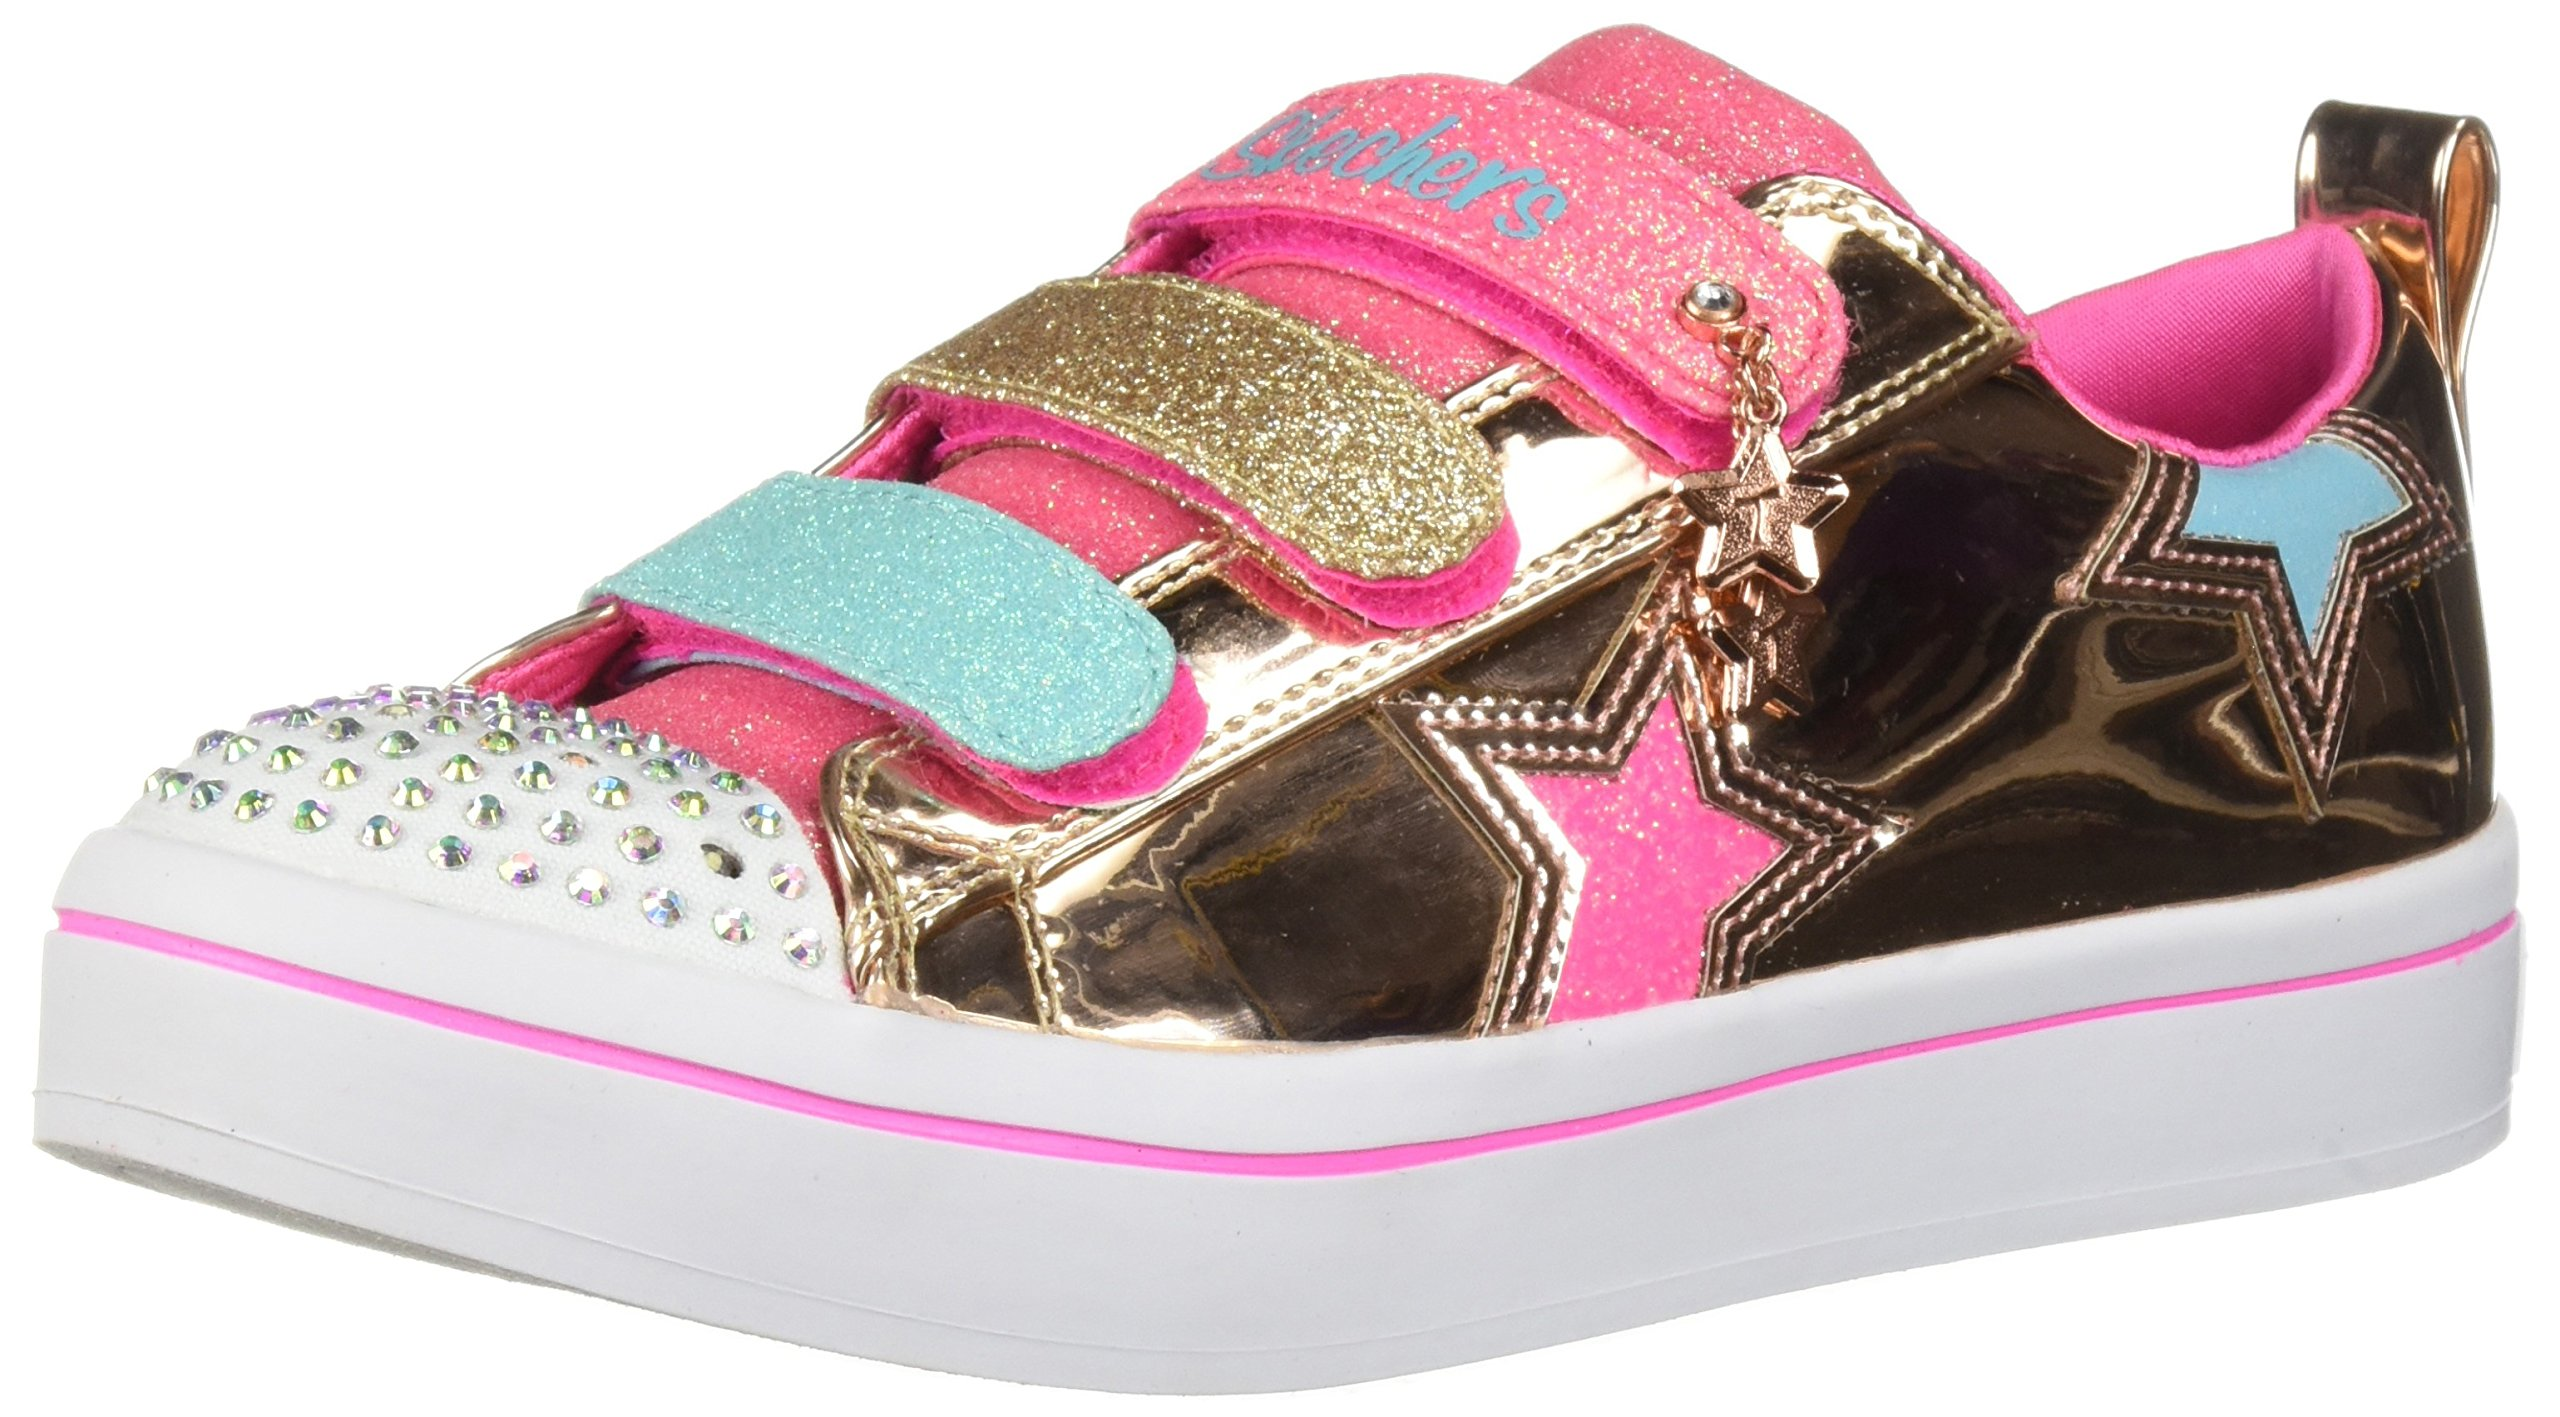 Skechers Kids Girls' TWI-Lites-Twinkle Starz Sneaker, Rose Gold, 13 Medium US Little Kid